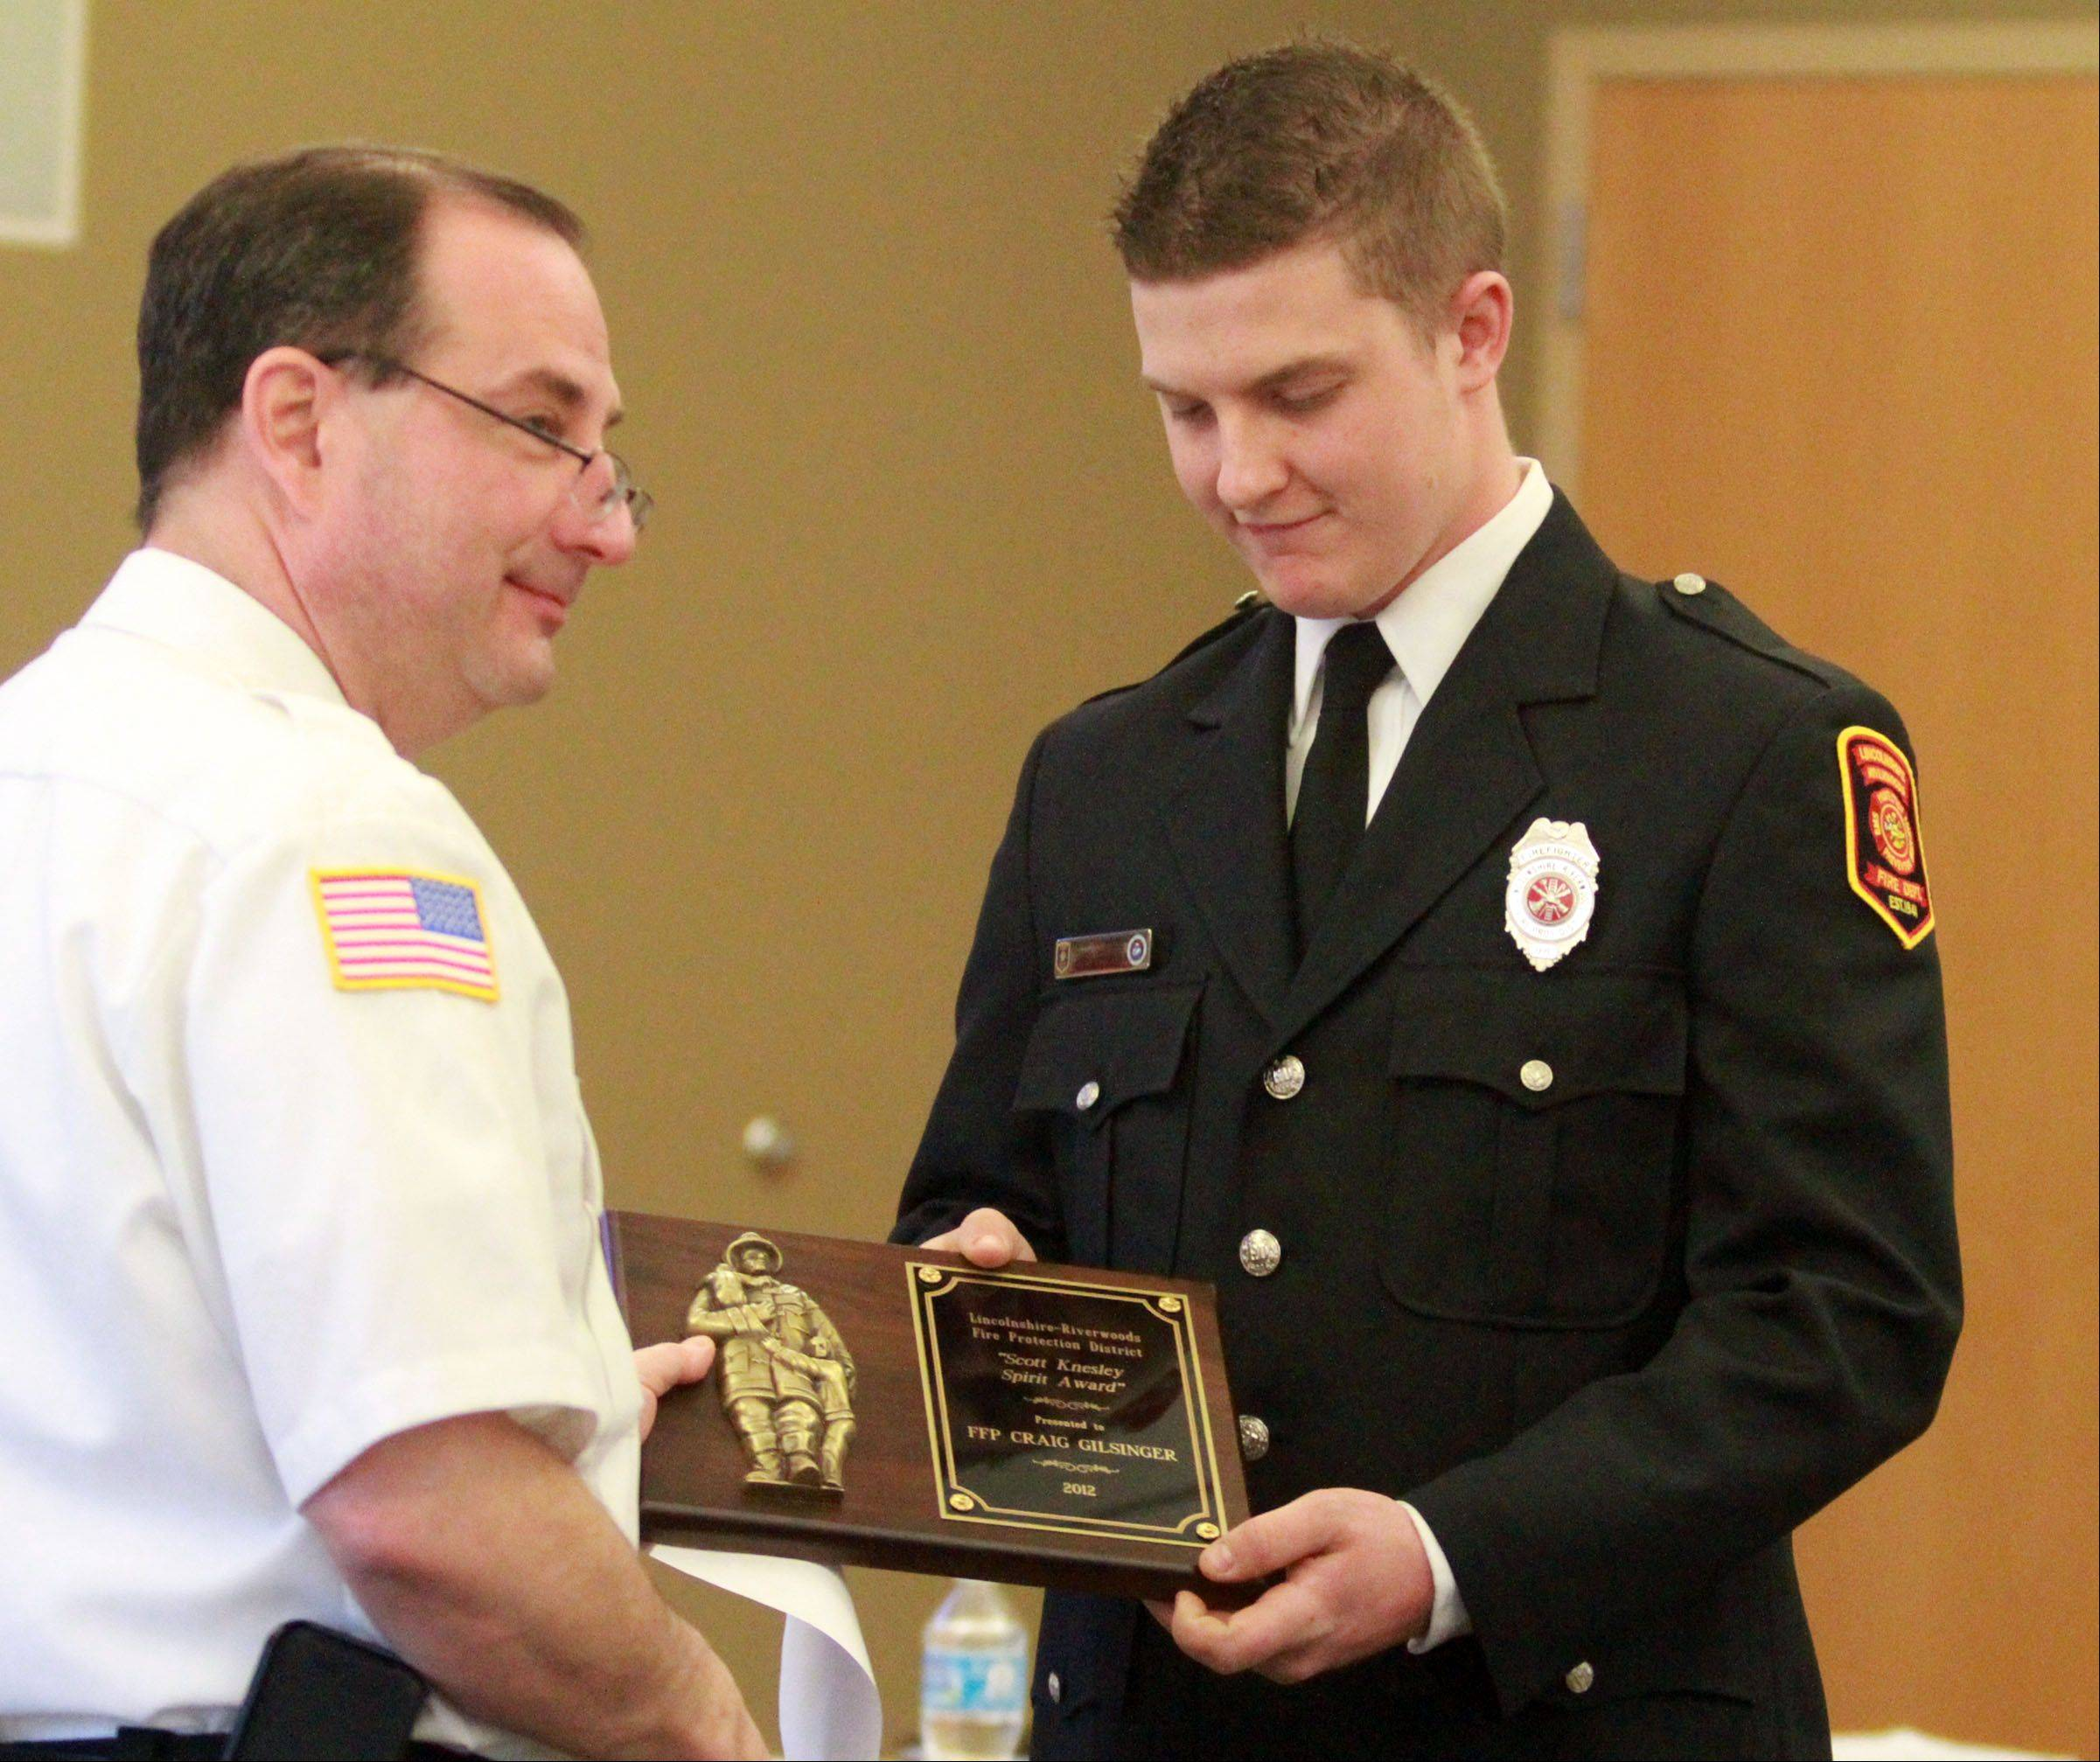 Deputy Chief Tony Ugaste, left, of the Lincolnshire-Riverwoods Fire Department presents the department's annual award Saturday to firefighter Craig Gilsinger during a fire district board meeting at Lincolnshire-Riverwoods Fire Protection District Station 53 in Vernon Hills.